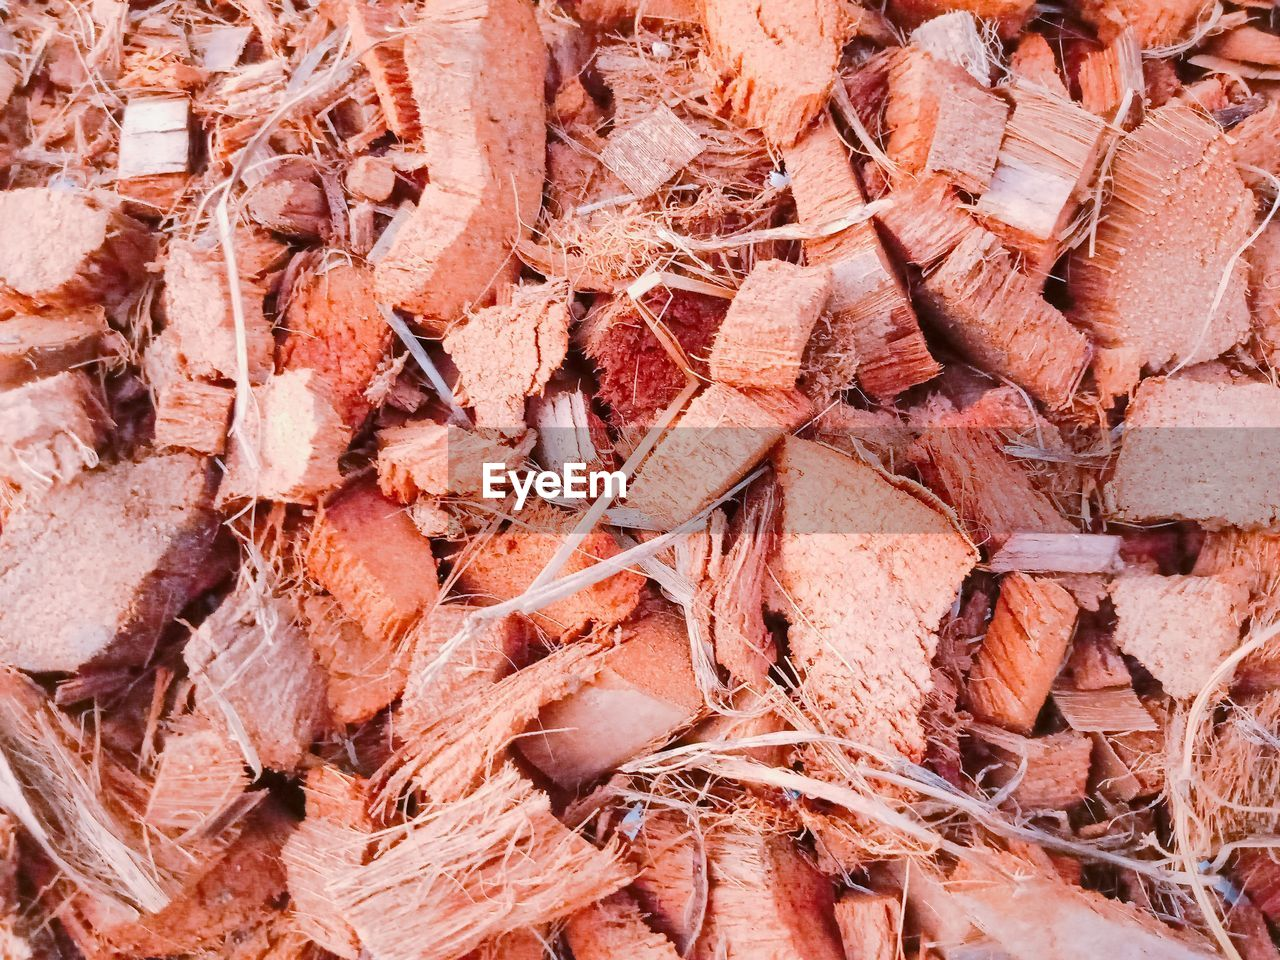 full frame, backgrounds, no people, day, large group of objects, abundance, brown, food and drink, nature, stack, food, high angle view, close-up, still life, outdoors, tree, heap, chopped, meat, freshness